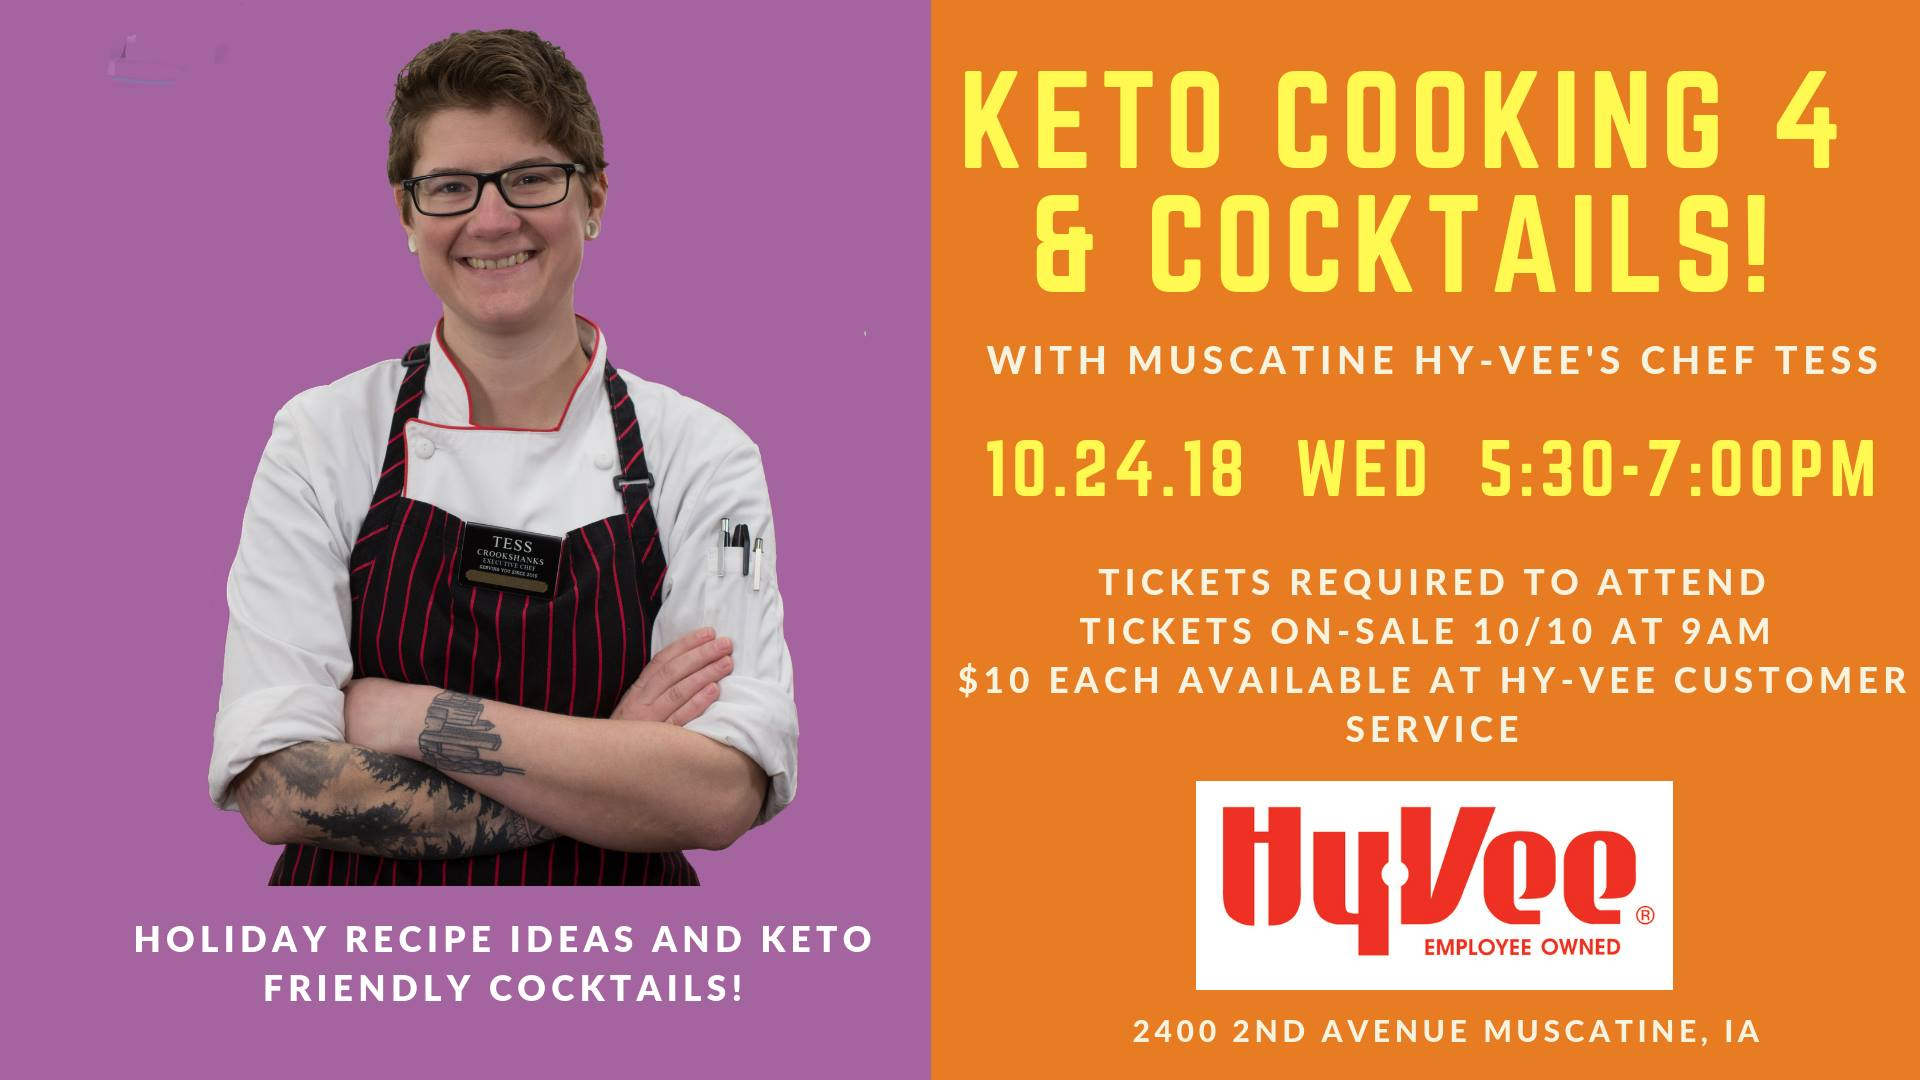 Keto Cooking and Cocktails